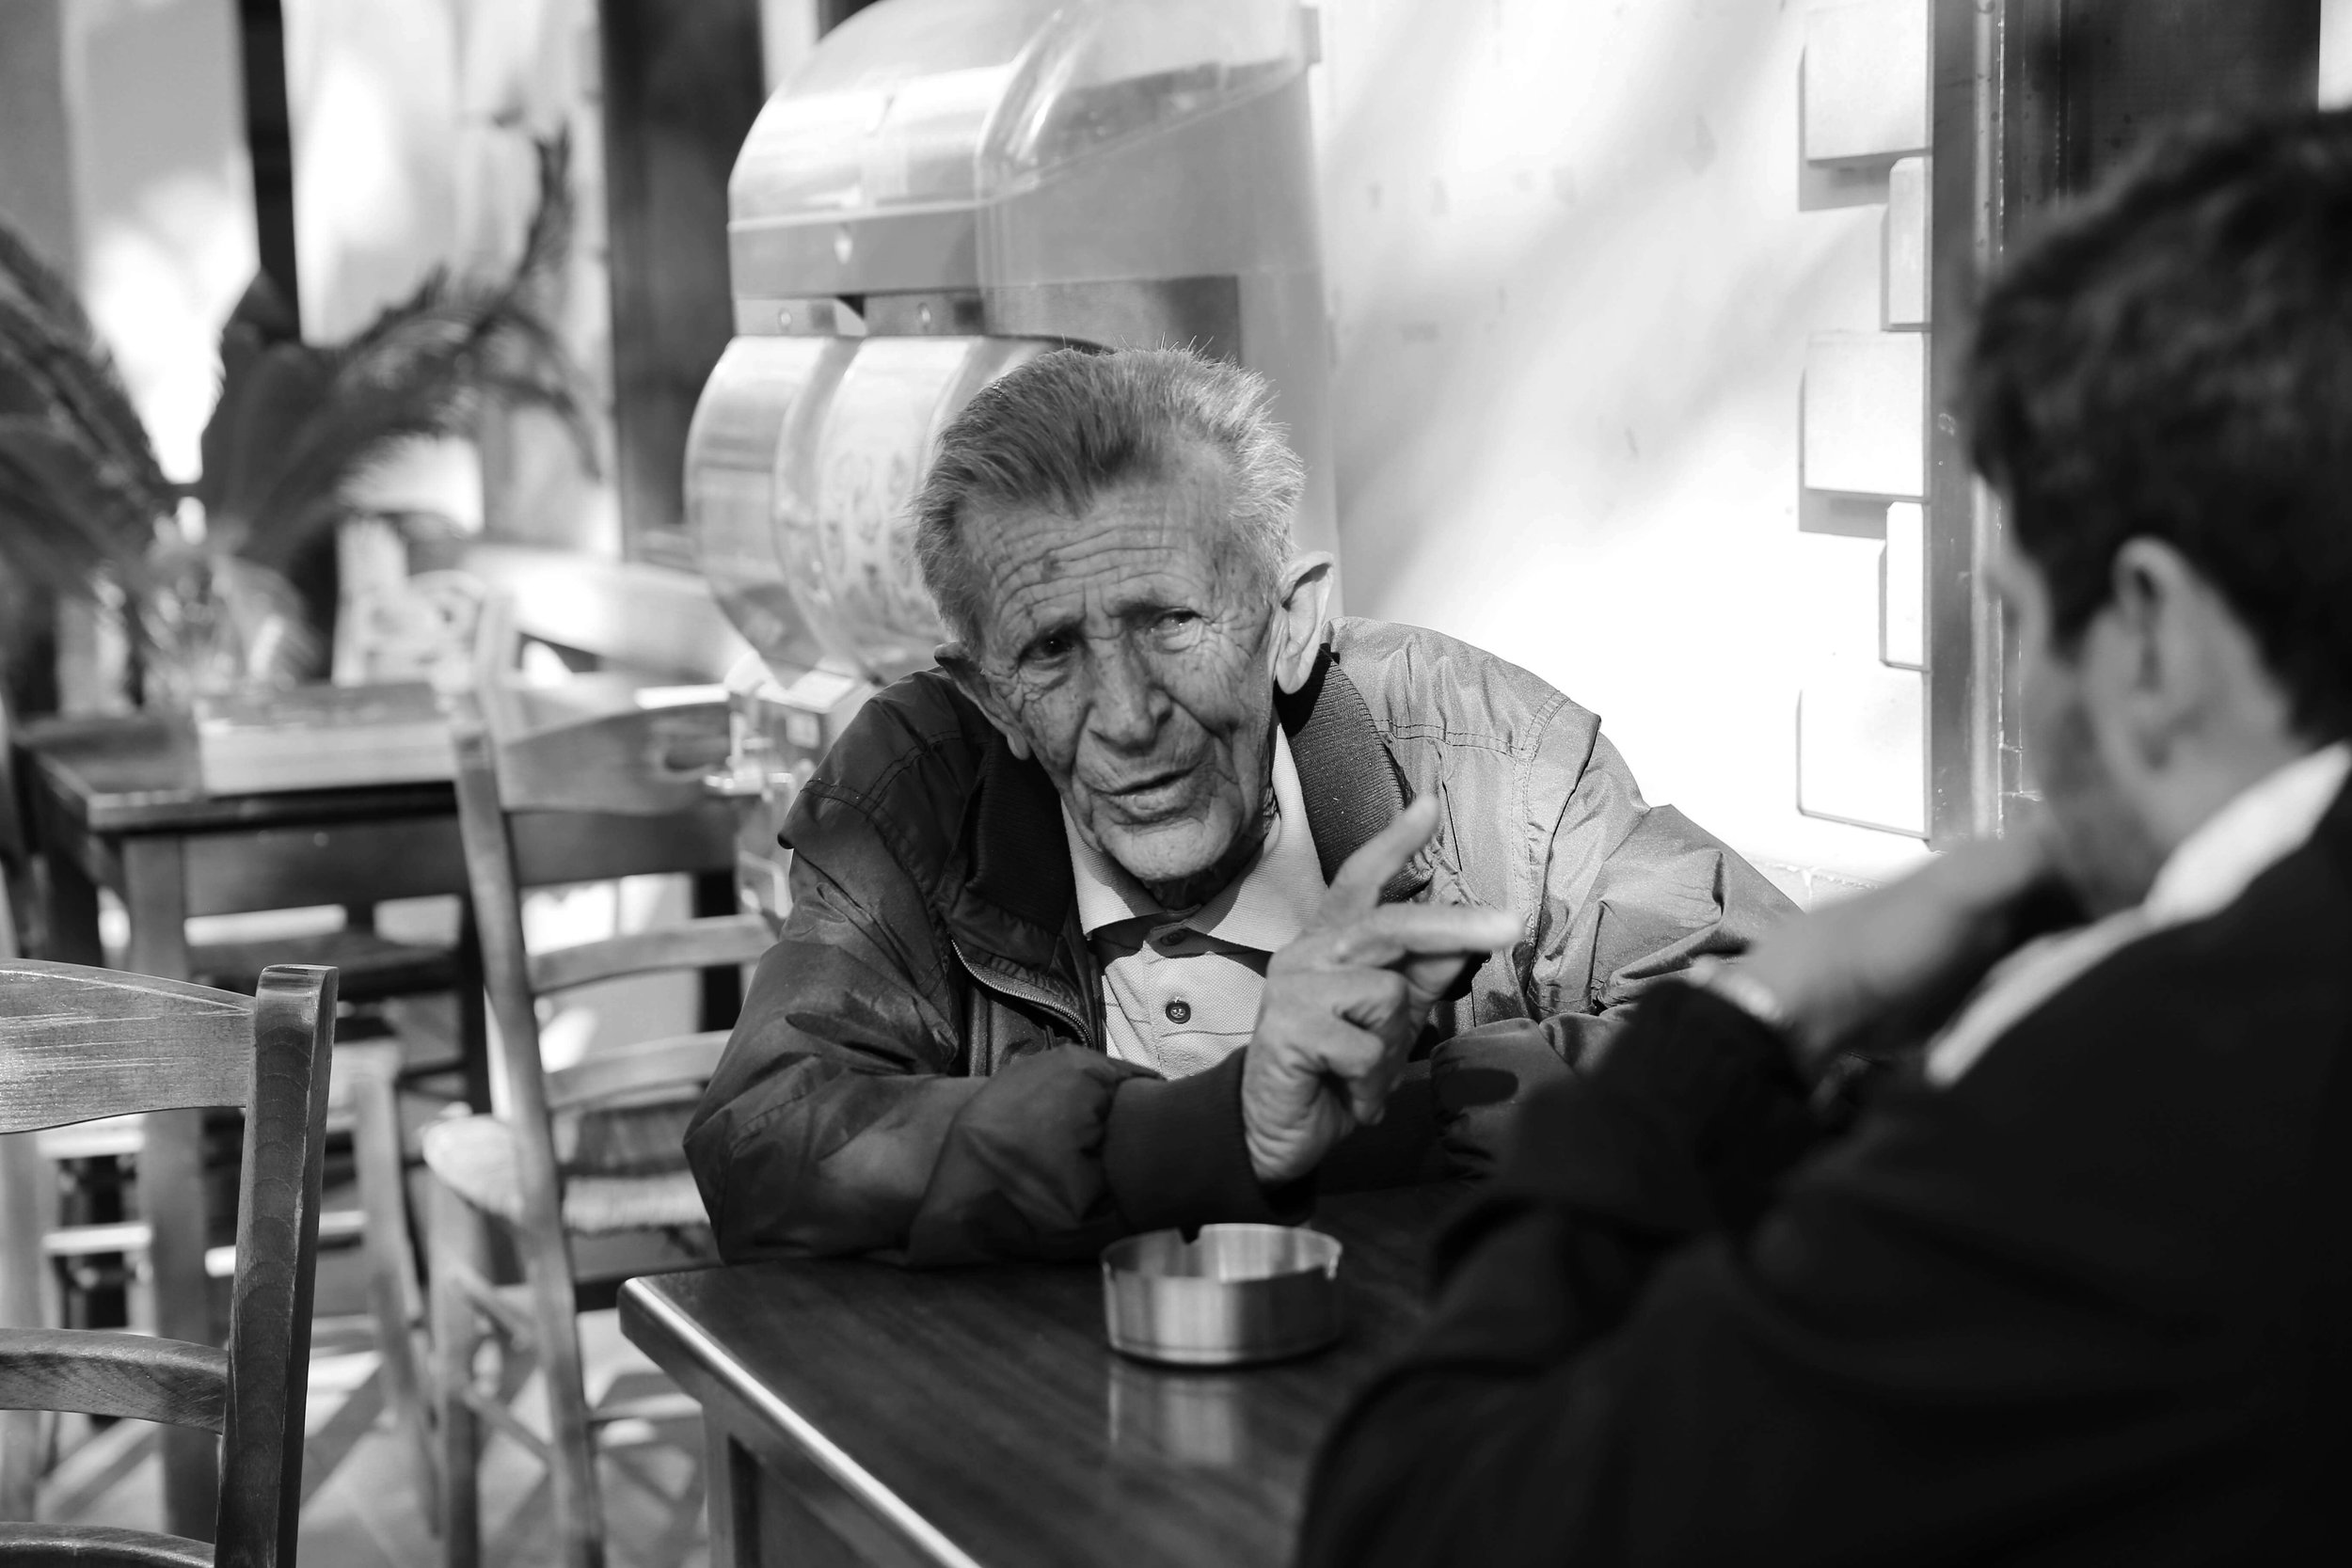 Not missing a single opportunity to meet someone new, hear their story and share a moment.  An old man sitting alone drinking his coffee at a coffee shop in Kato Pyrgos, welcomed the young man who sat down to chat with him during a short bathroom stop.